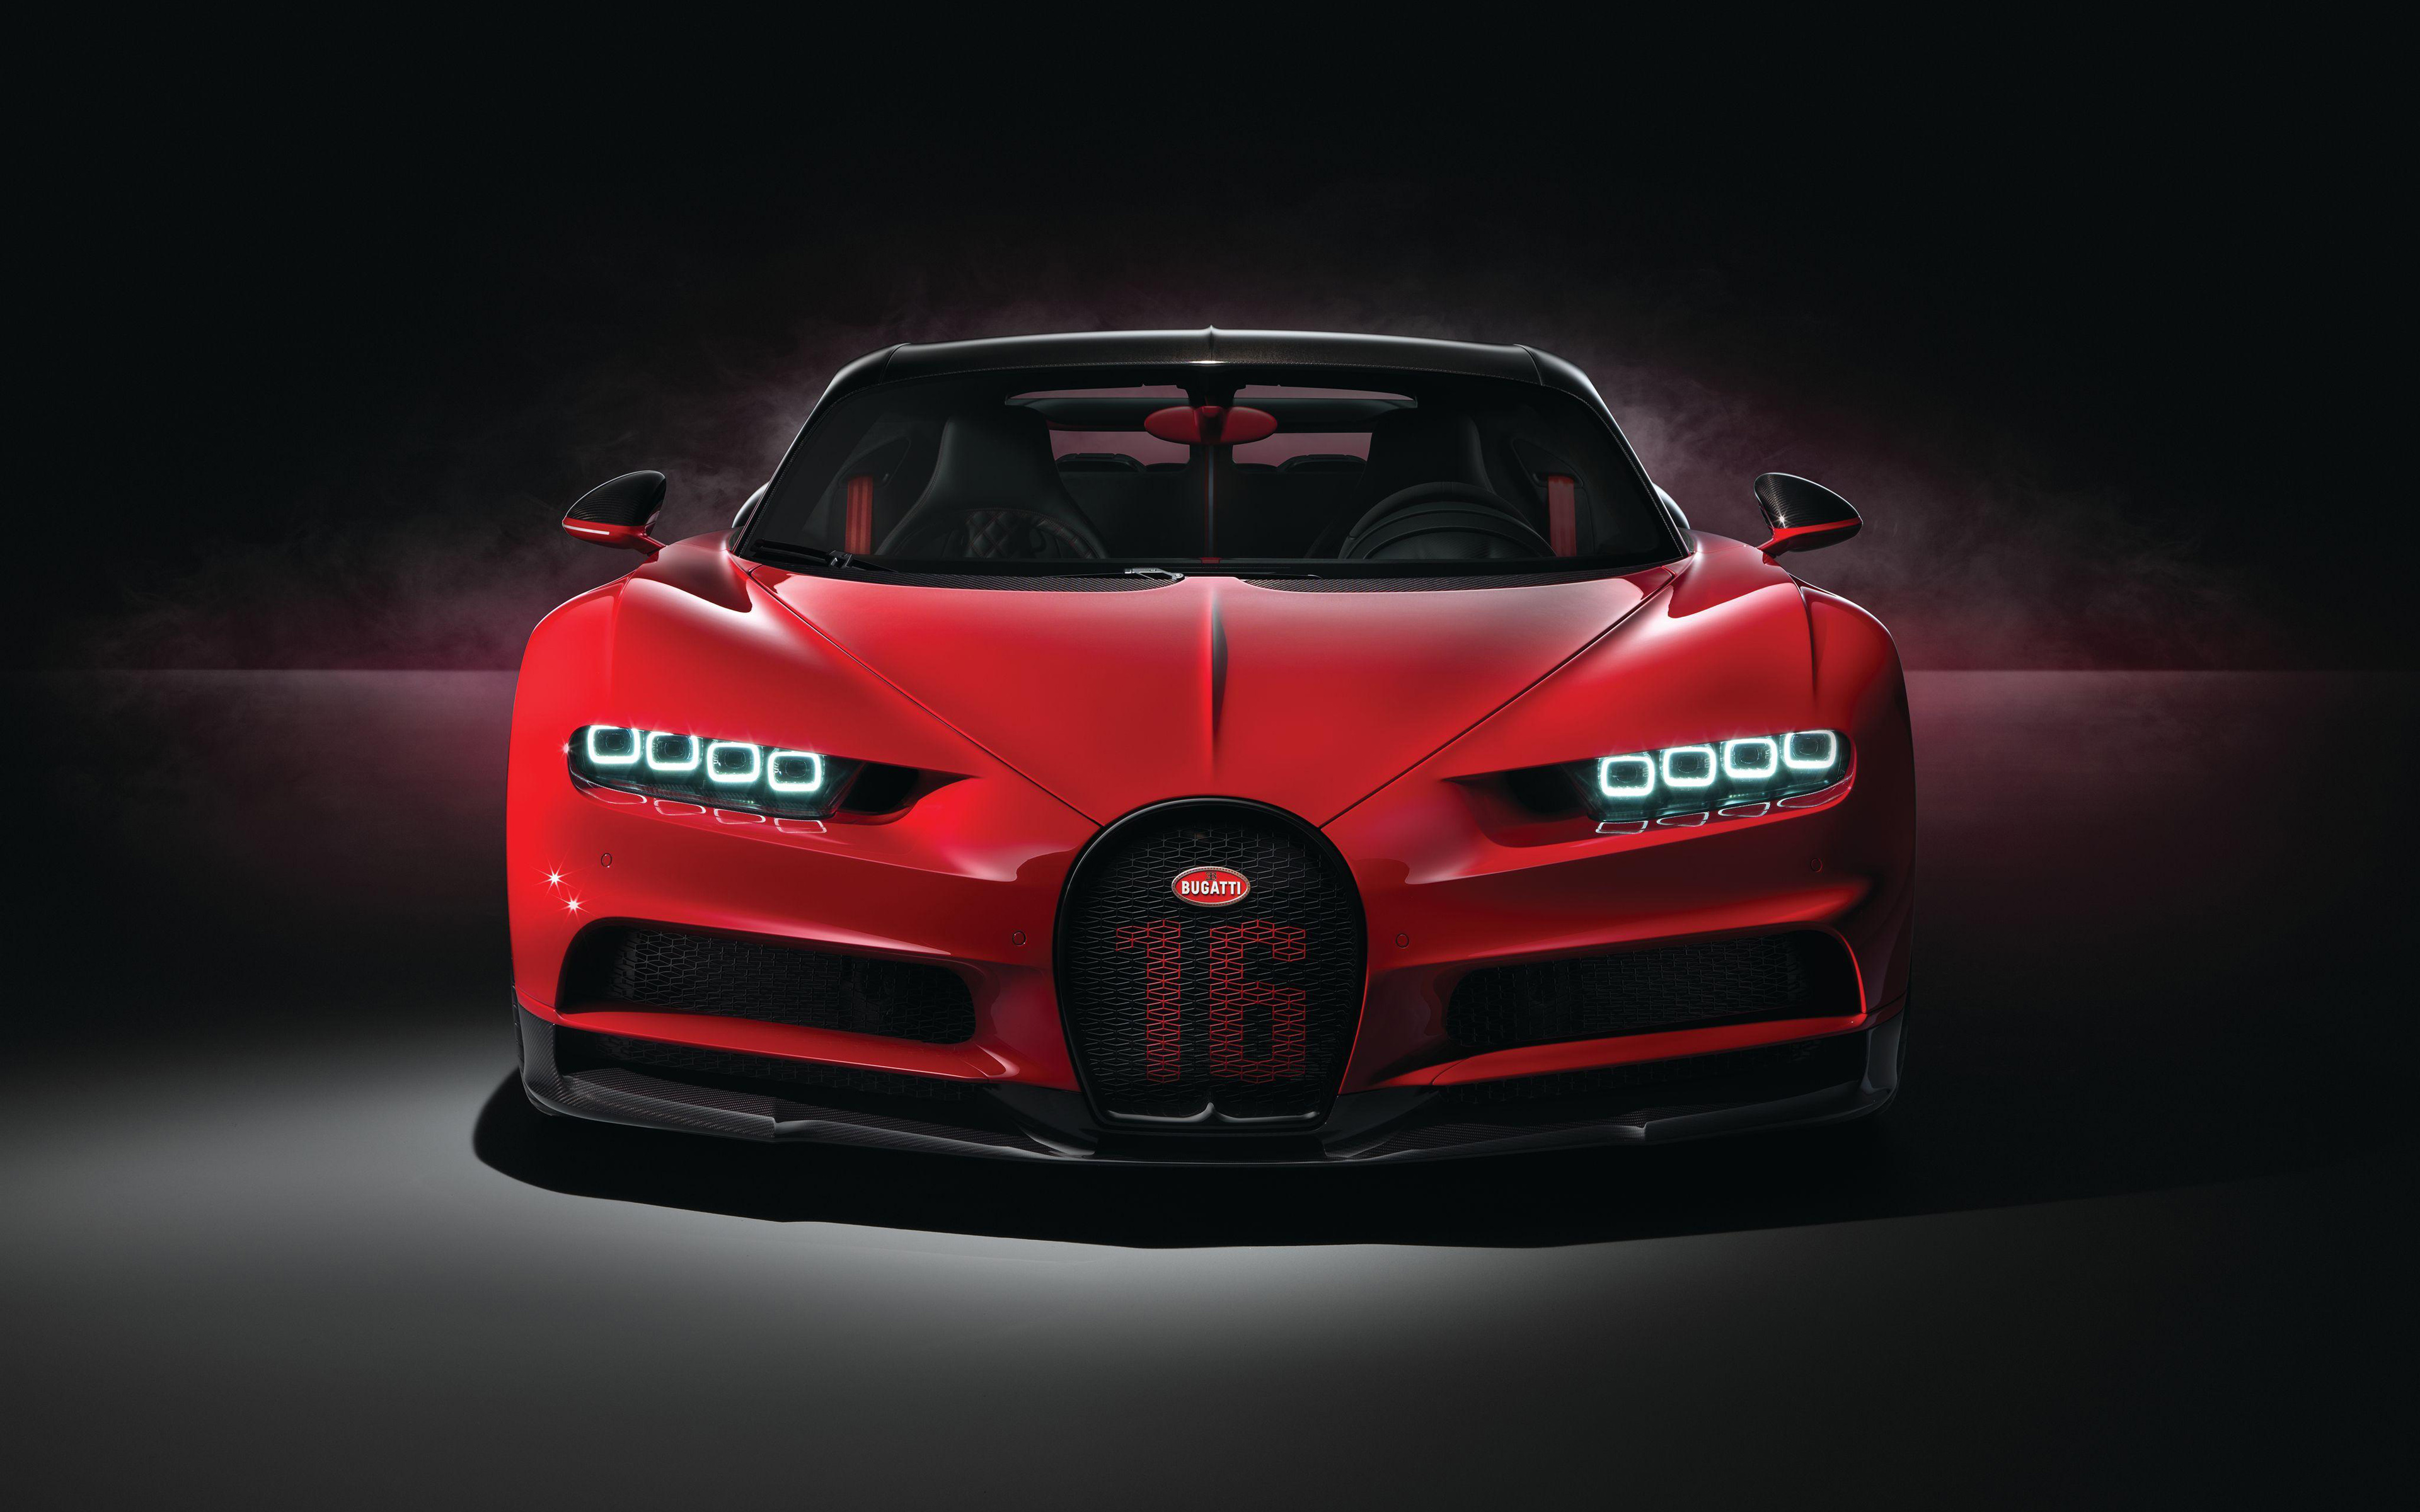 4k-bugatti-chiron-sport-front-view-2018-cars-red-chiron